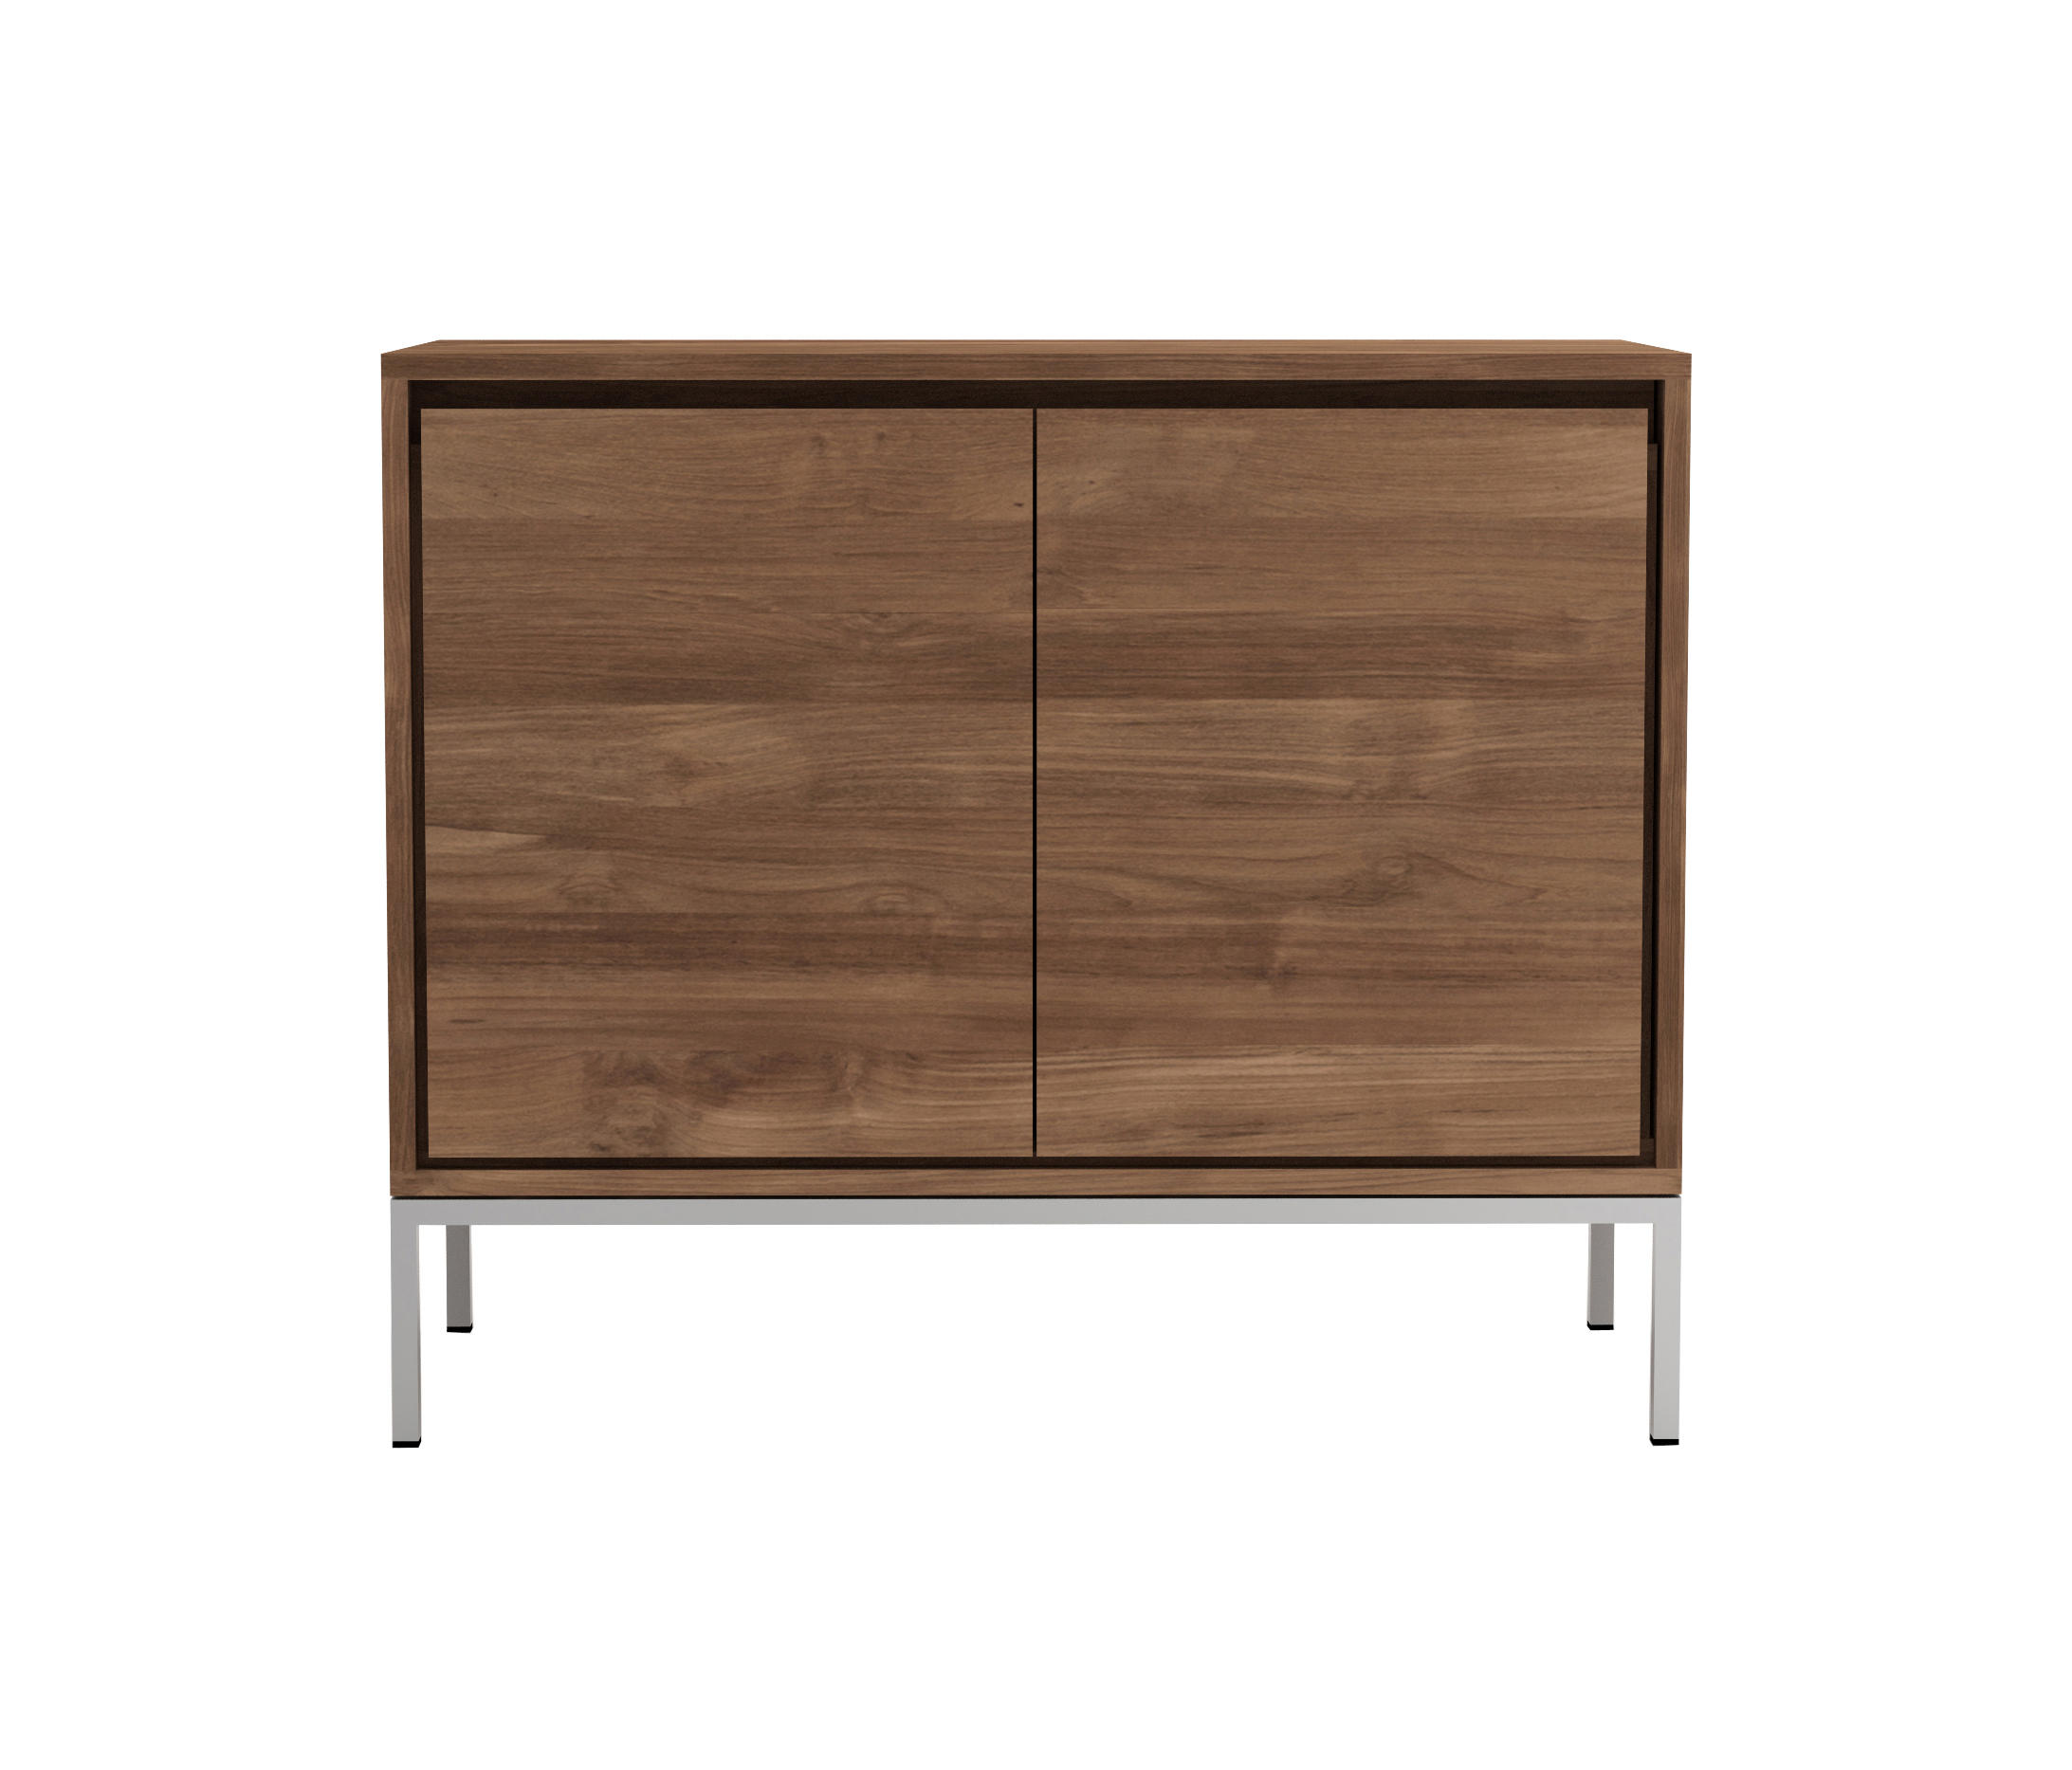 Teak Essential Sideboard Sideboards From Ethnicraft Architonic # Ethnicraft Meuble Tv